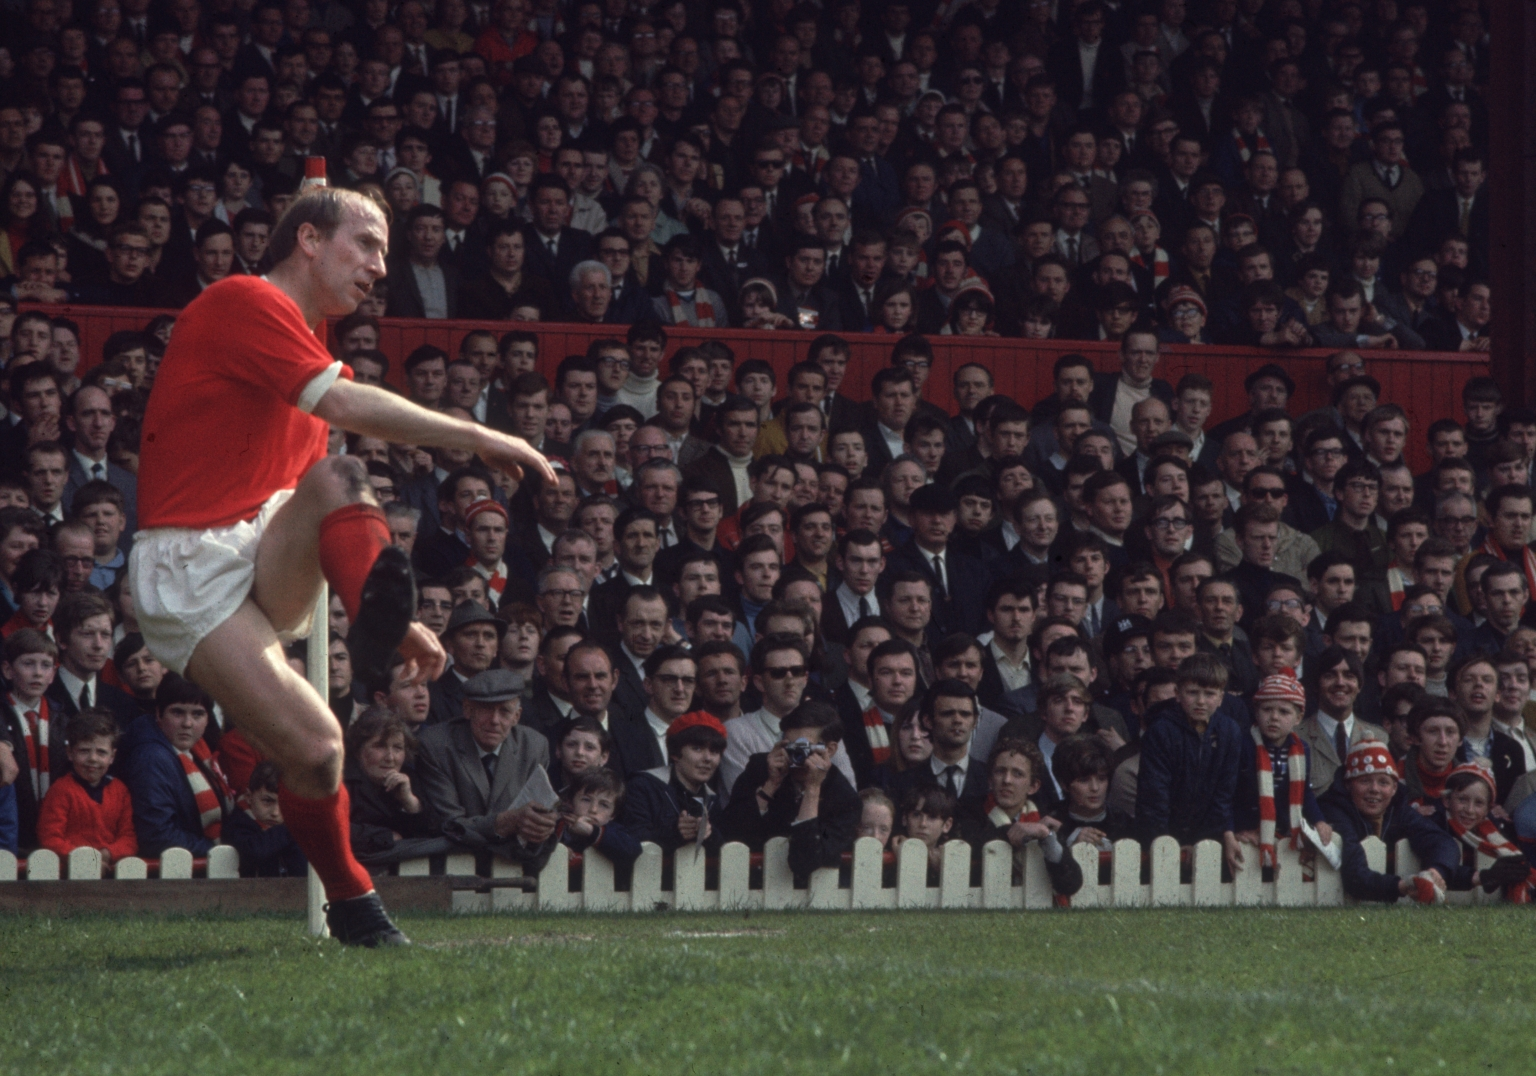 https://arjyomitra94.files.wordpress.com/2016/02/bobby-charlton-manchester-united.jpg?w=1536